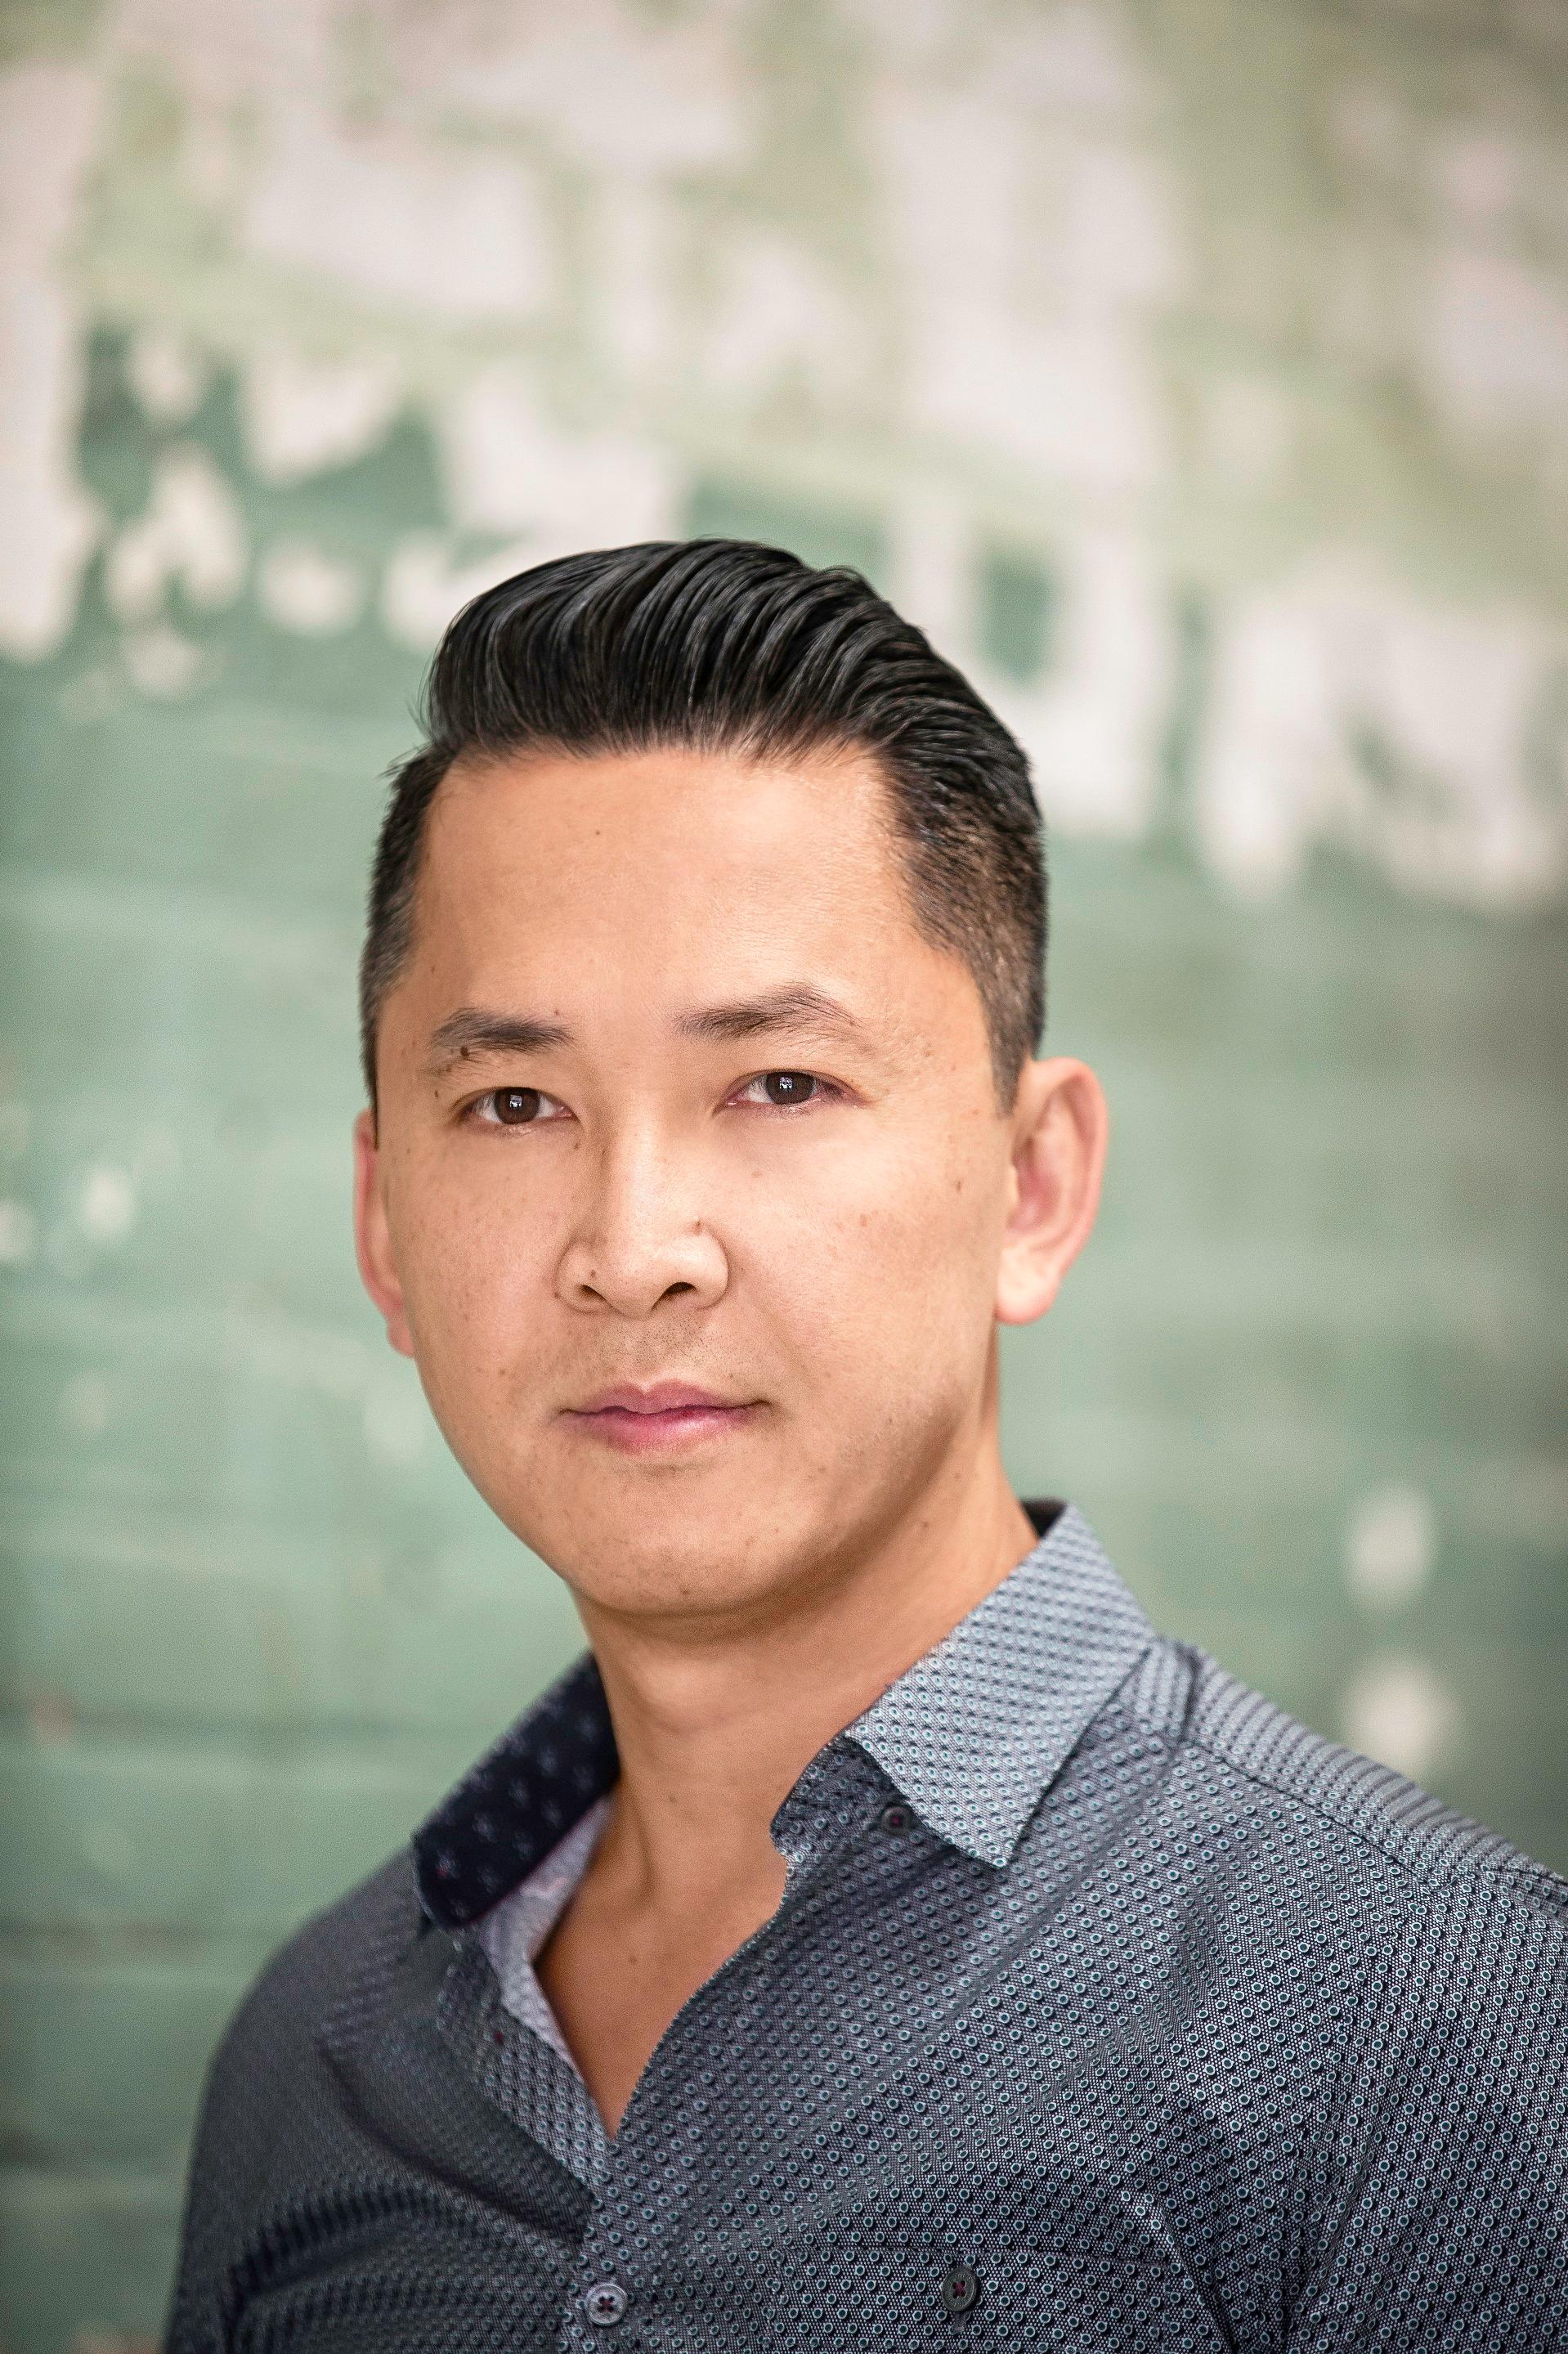 Author Viet Thanh Nguyen (Image: BeBe Jacobs)